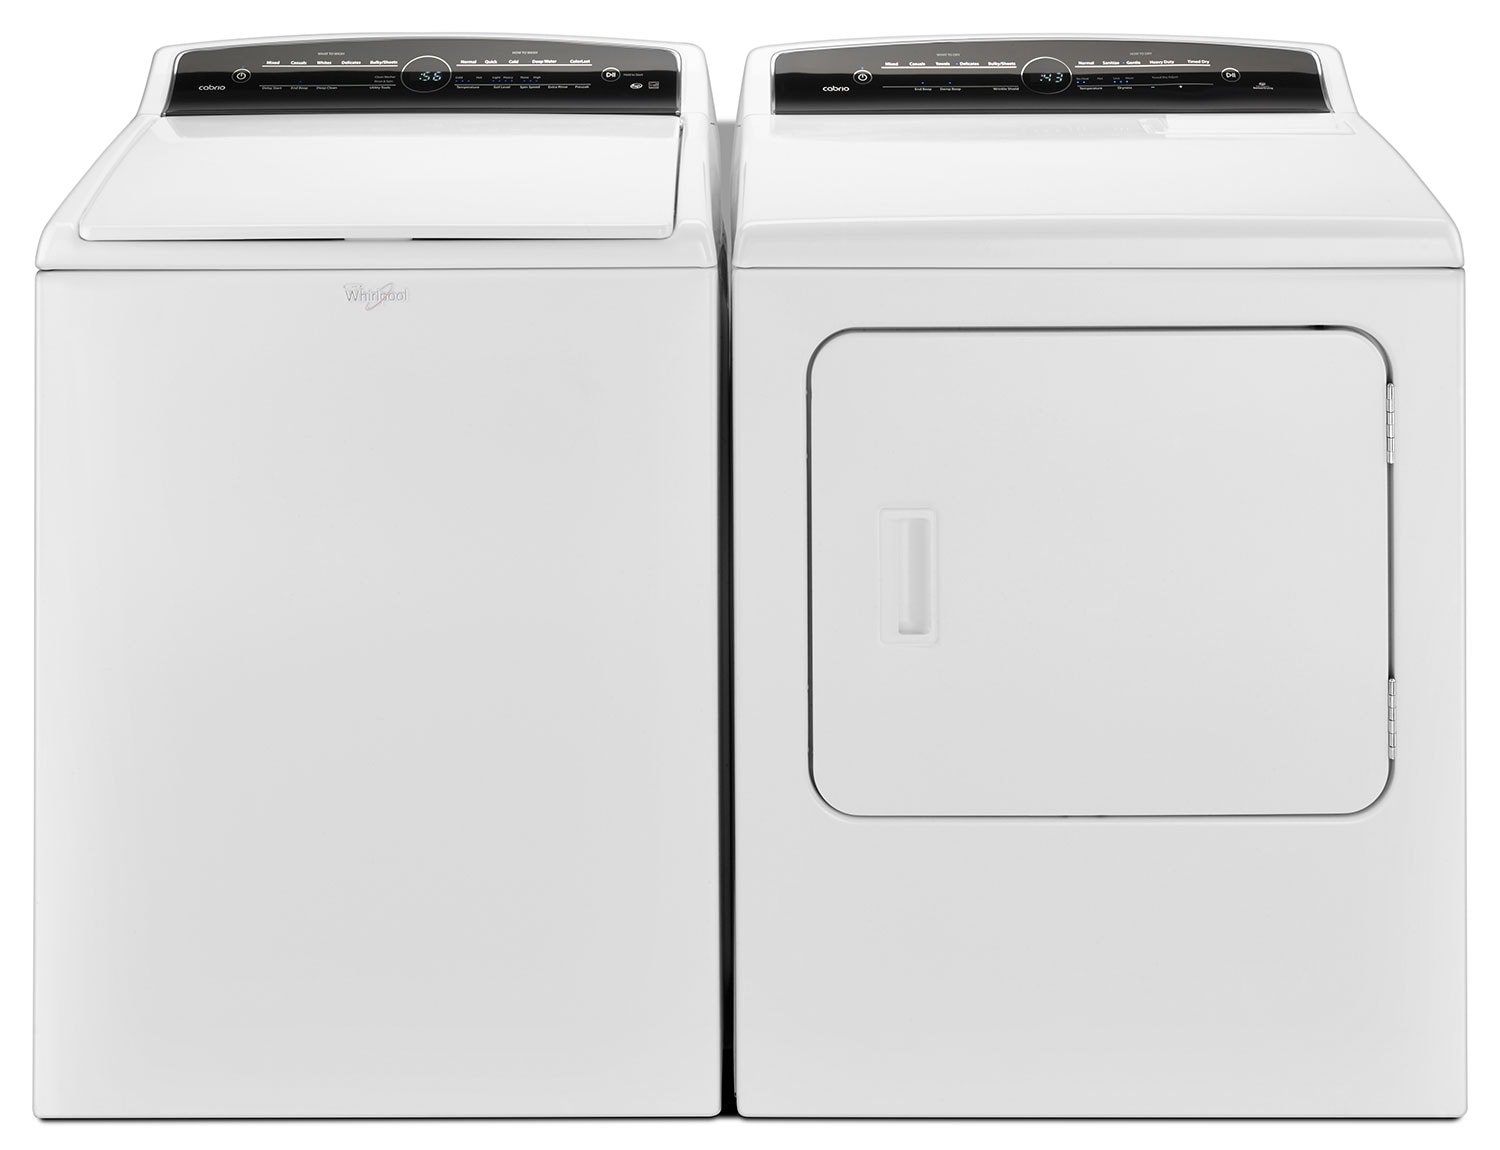 Washers and Dryers - Whirlpool® Cabrio® 5.5 Cu. Ft. Top-Load Washer and 7.0 Cu. Ft. Gas Dryer - White